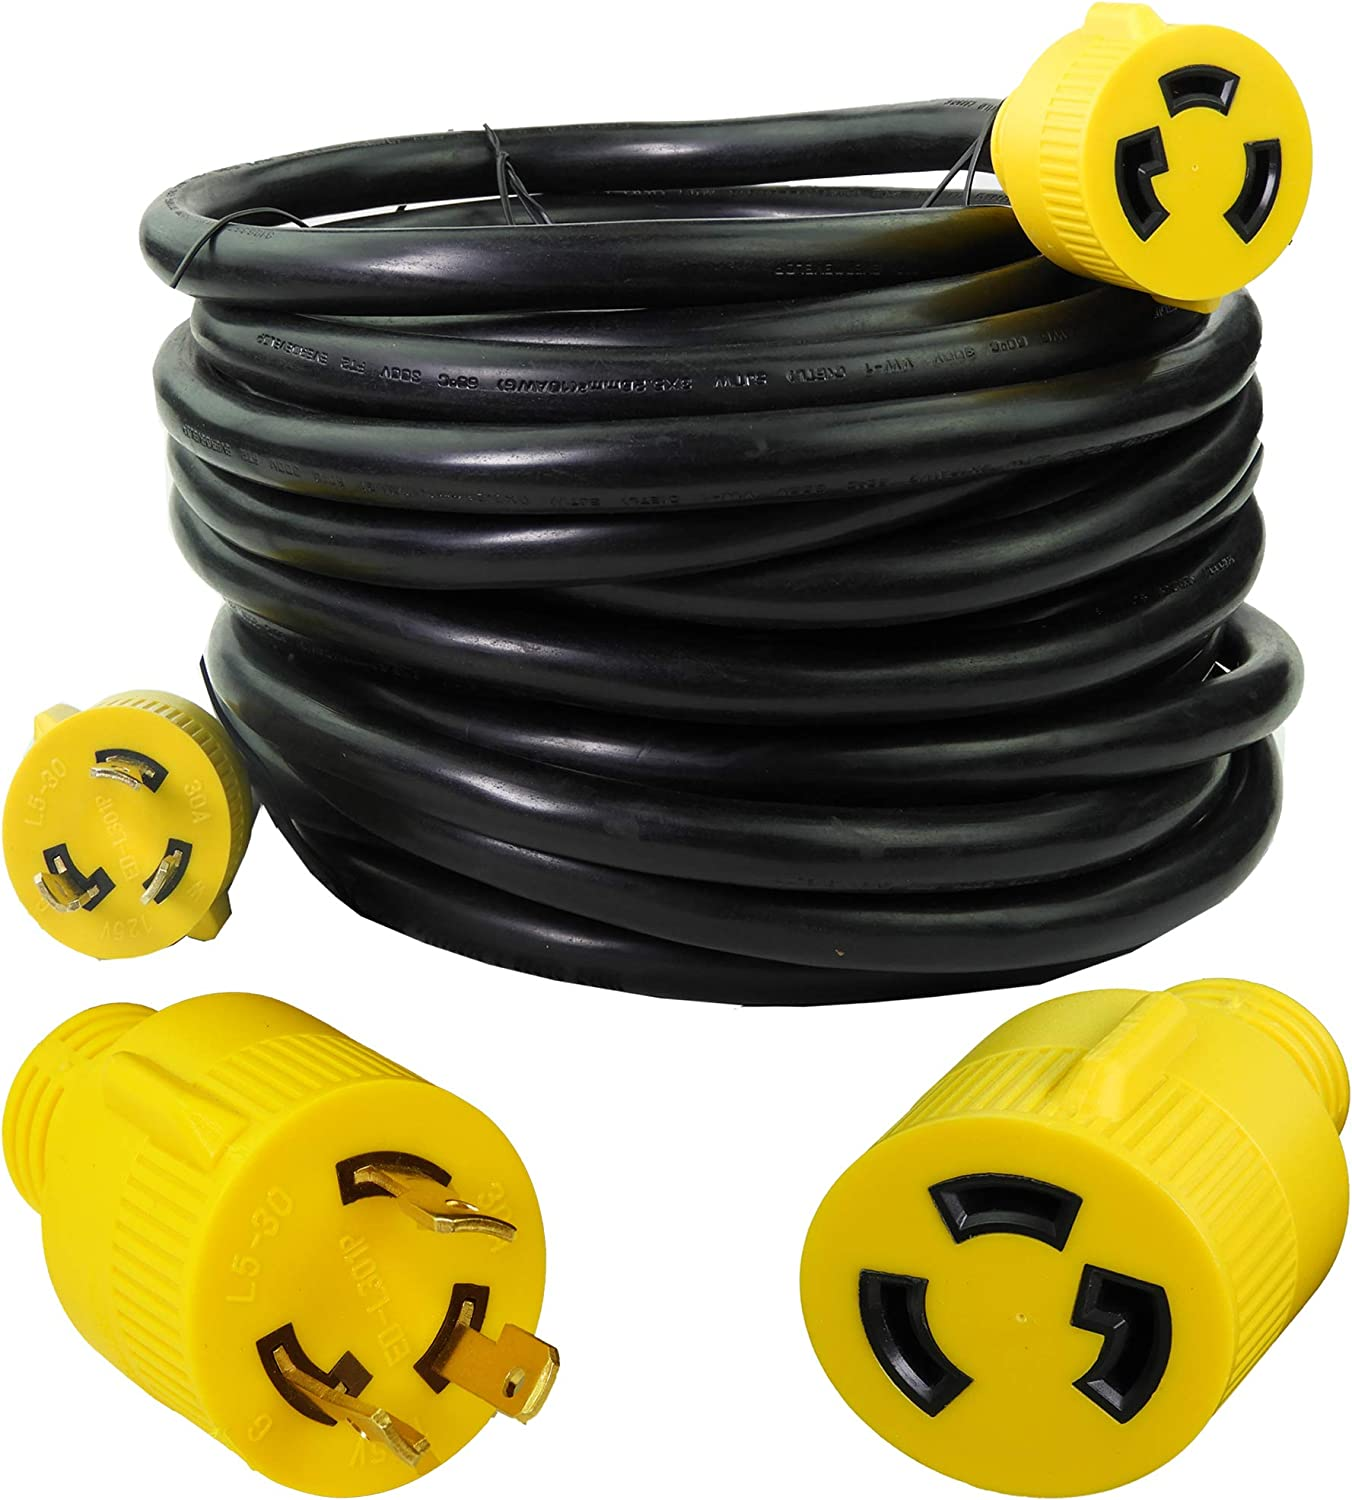 Leisure Cords Sales of SALE items from new works 3-Prong 50 Foot 30 Gauge Dedication Cord He Amp Generator 10